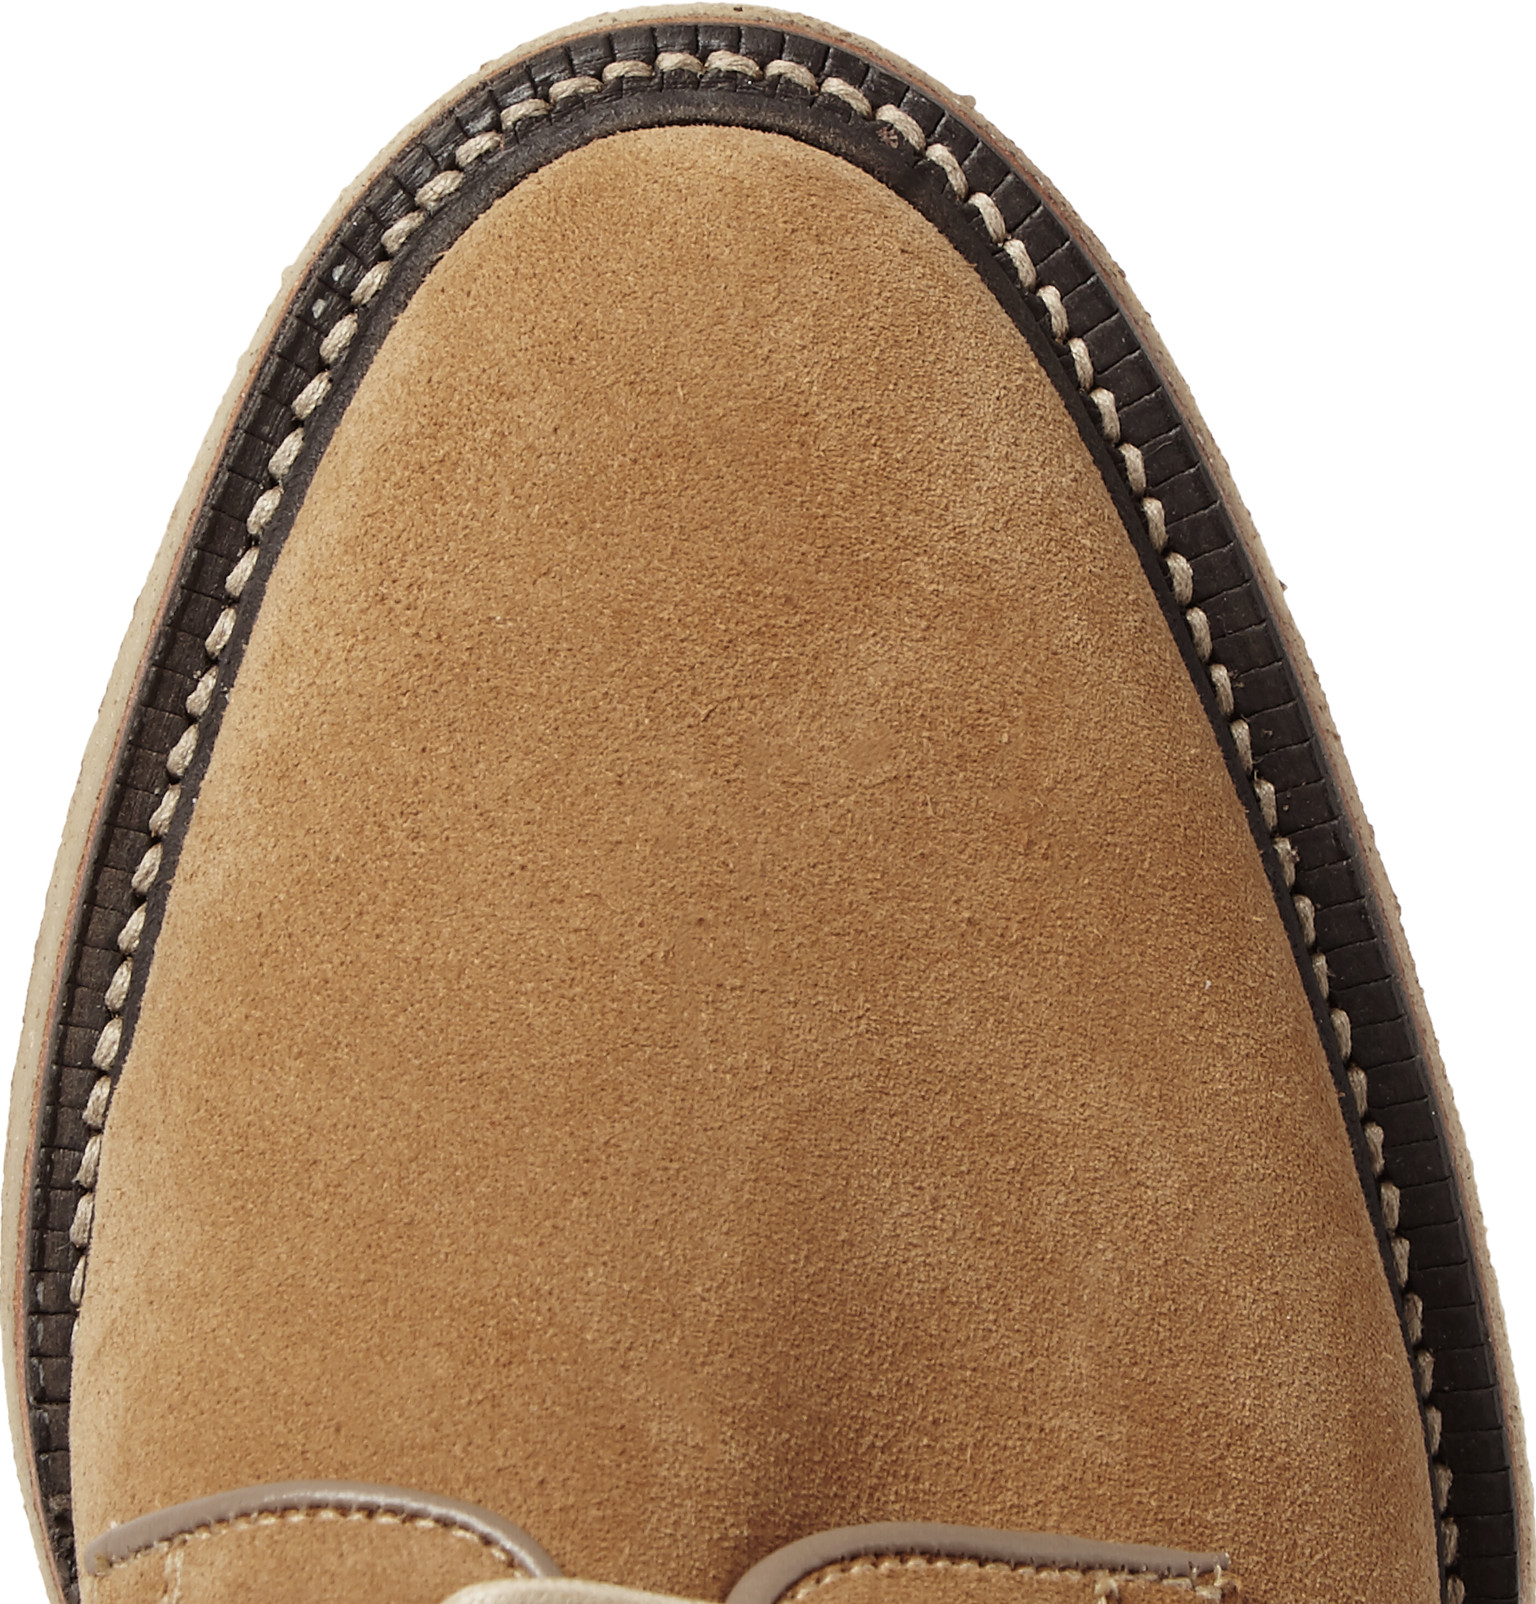 Thom Browne Suede Derby Shoes in Camel (Natural) for Men